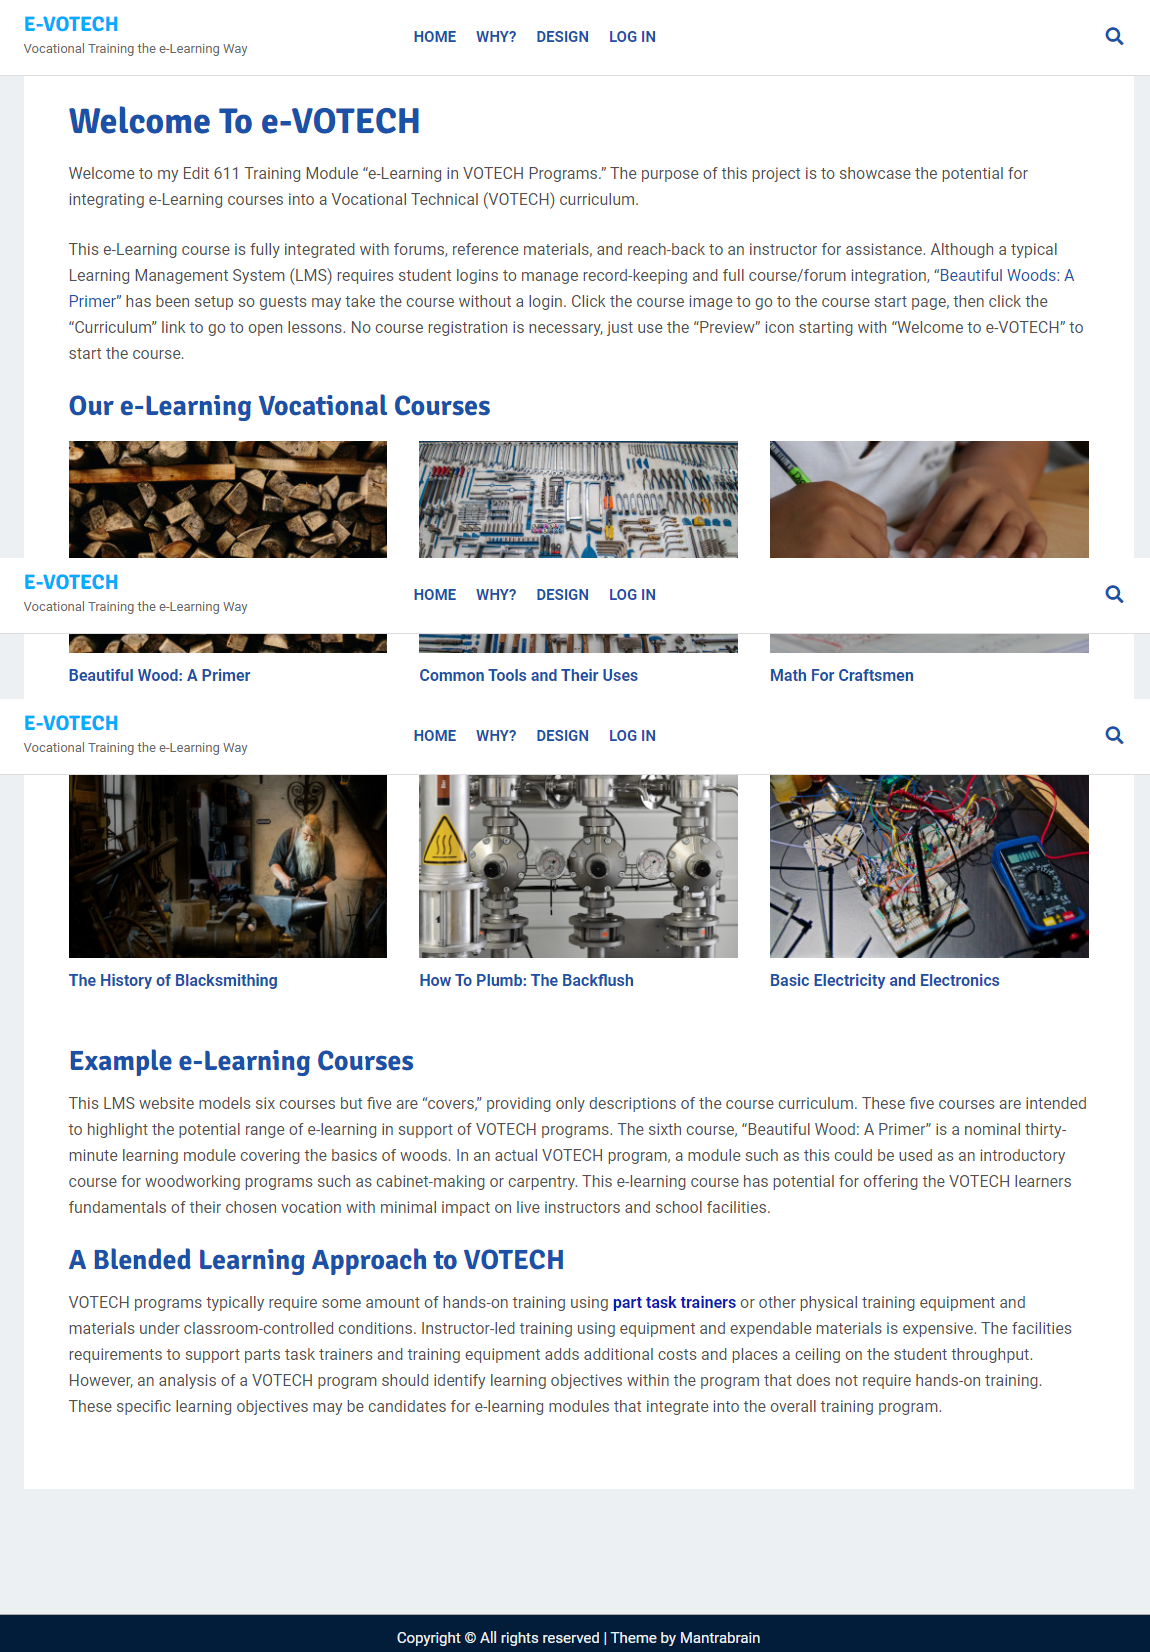 e-VOTECH Learning Management System